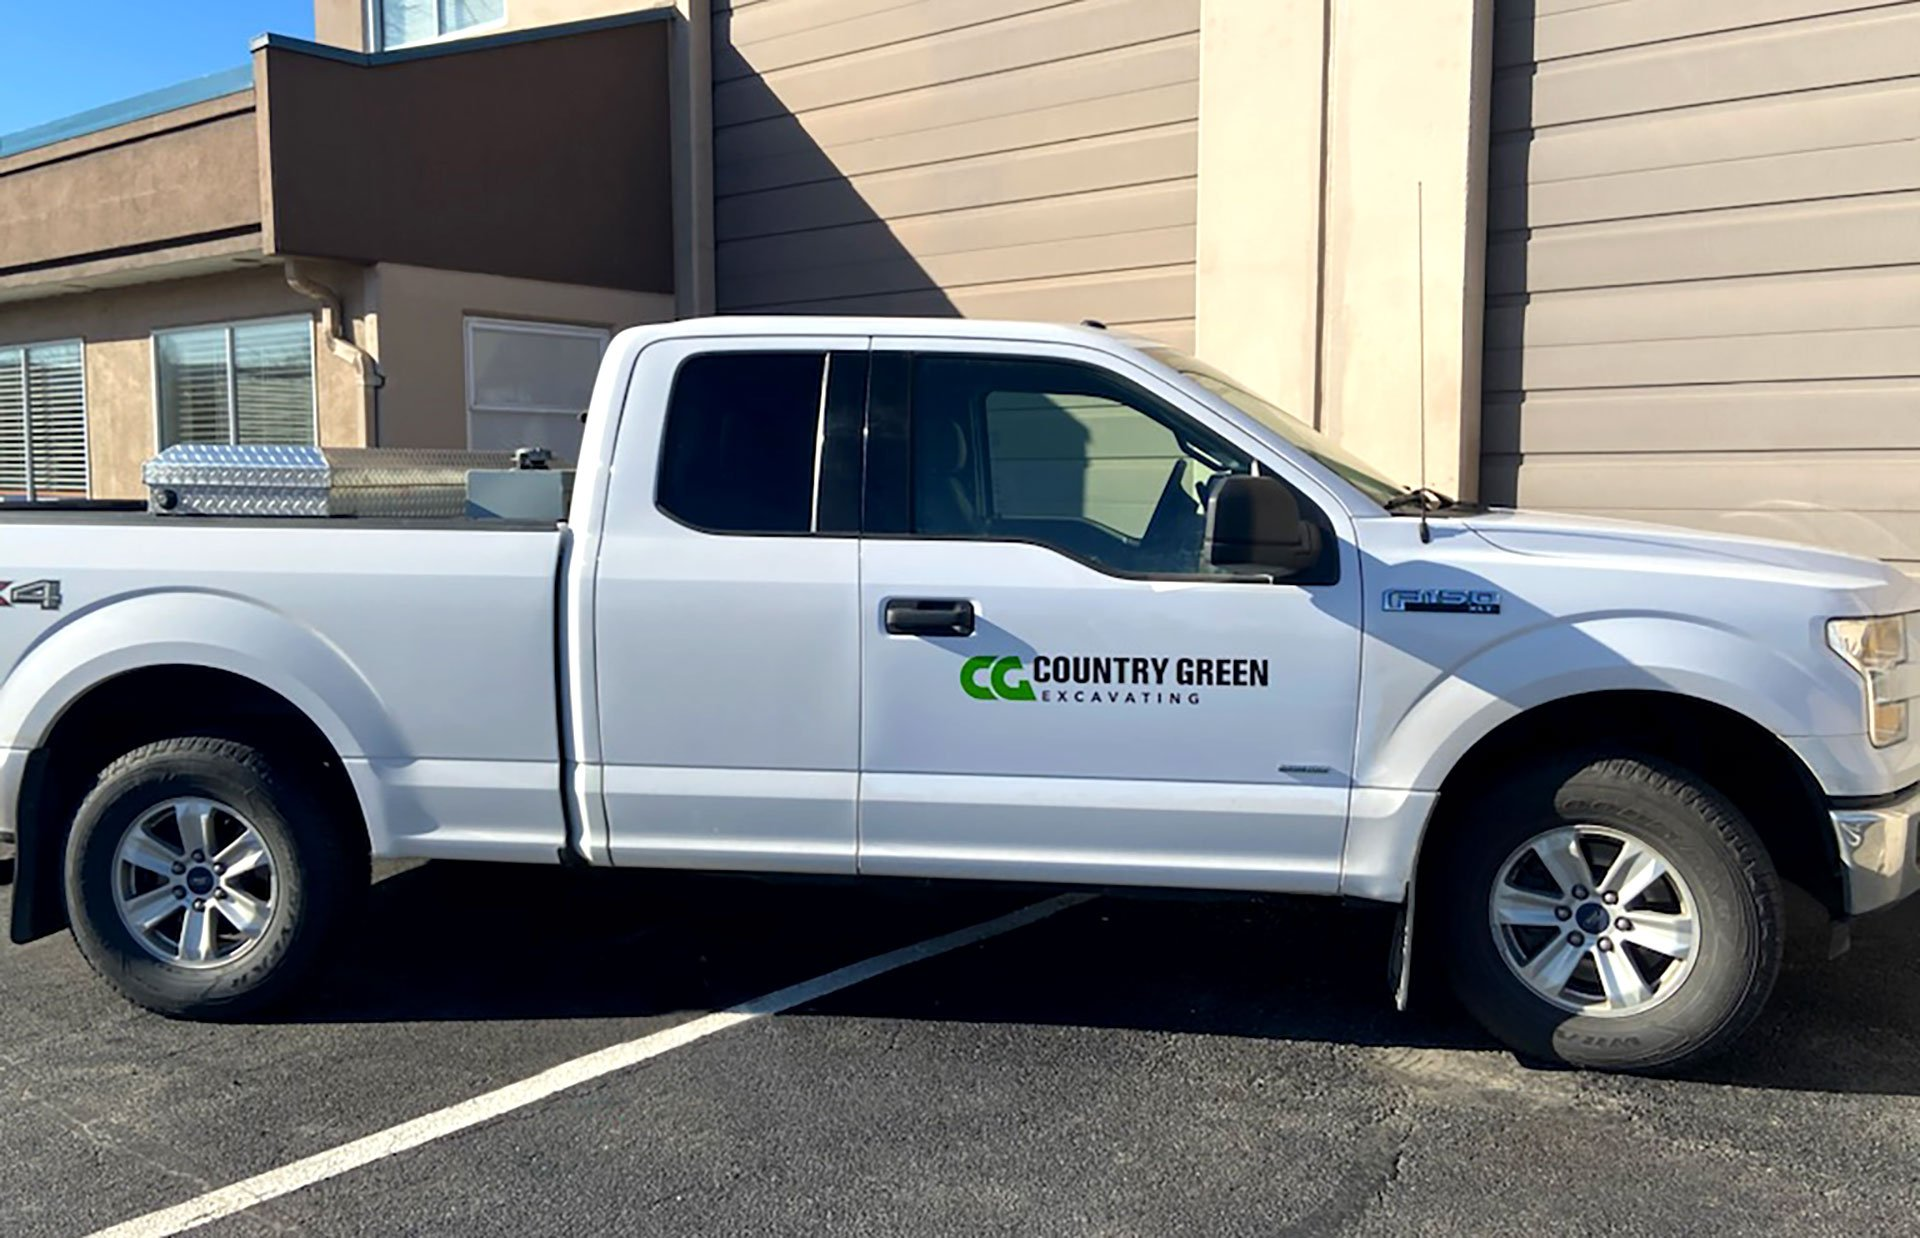 Country-Green-Excavating-Vehicle-Decal-Truck 2